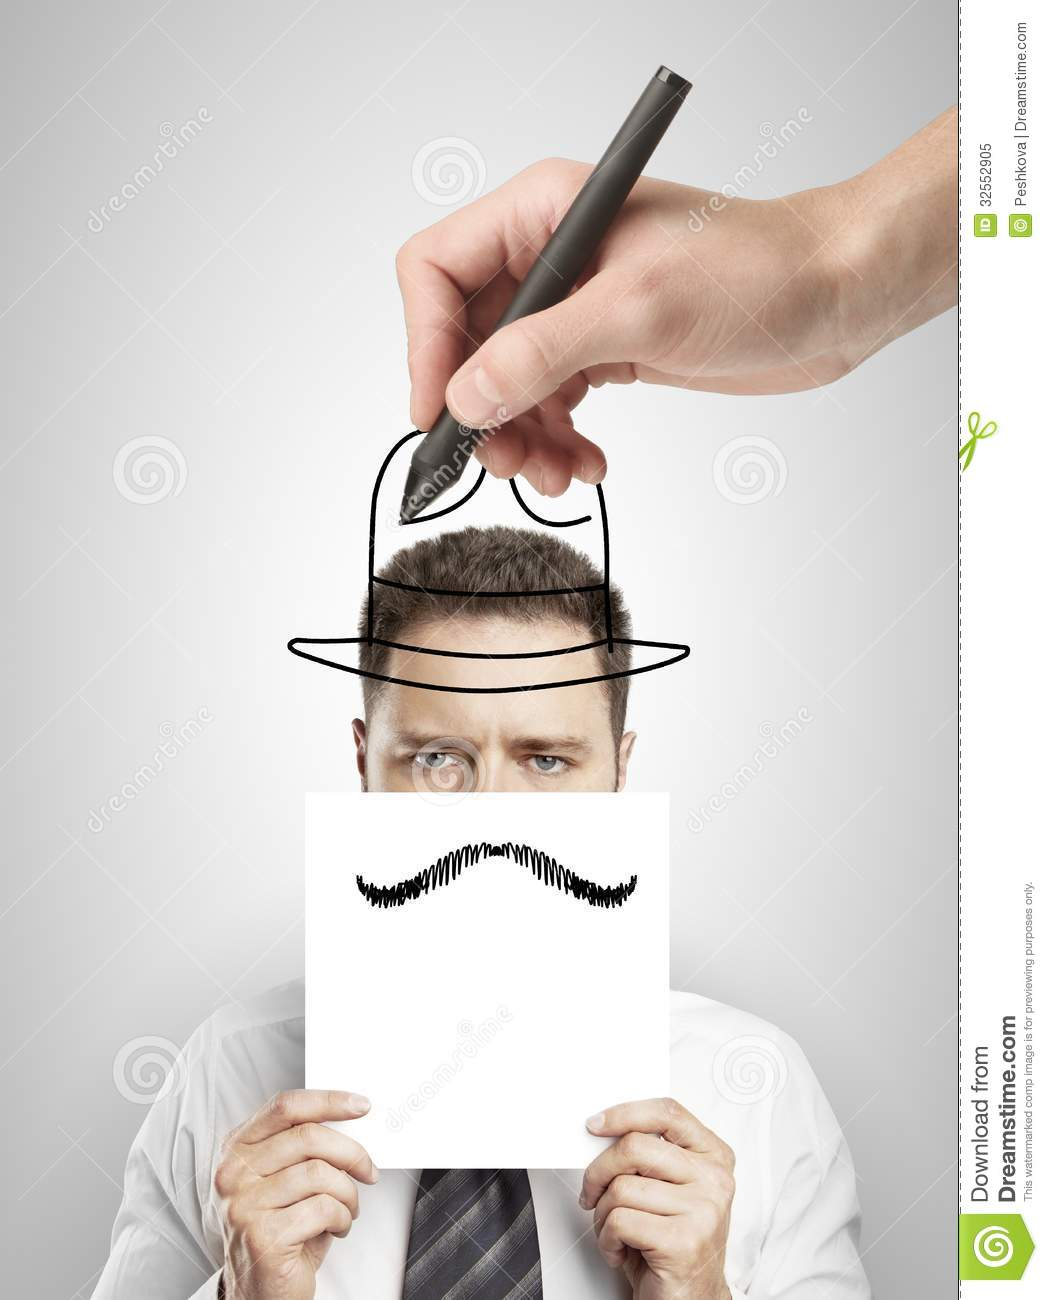 Technology Management Image: Hand Drawing Hat Royalty Free Stock Photo